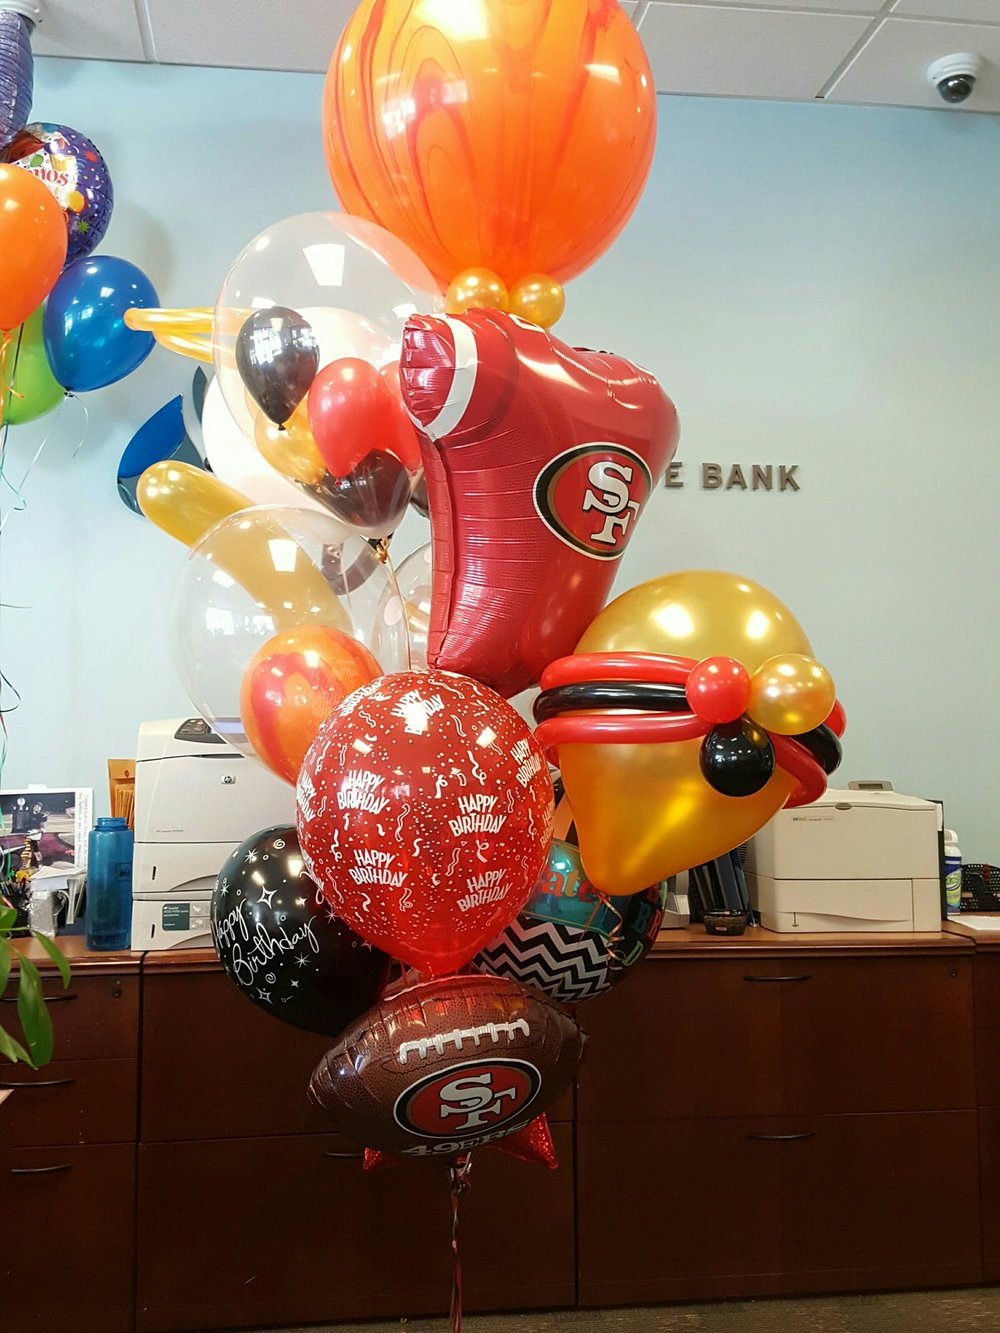 San Francisco 49ers Birthday Balloon Bouquet.jpg